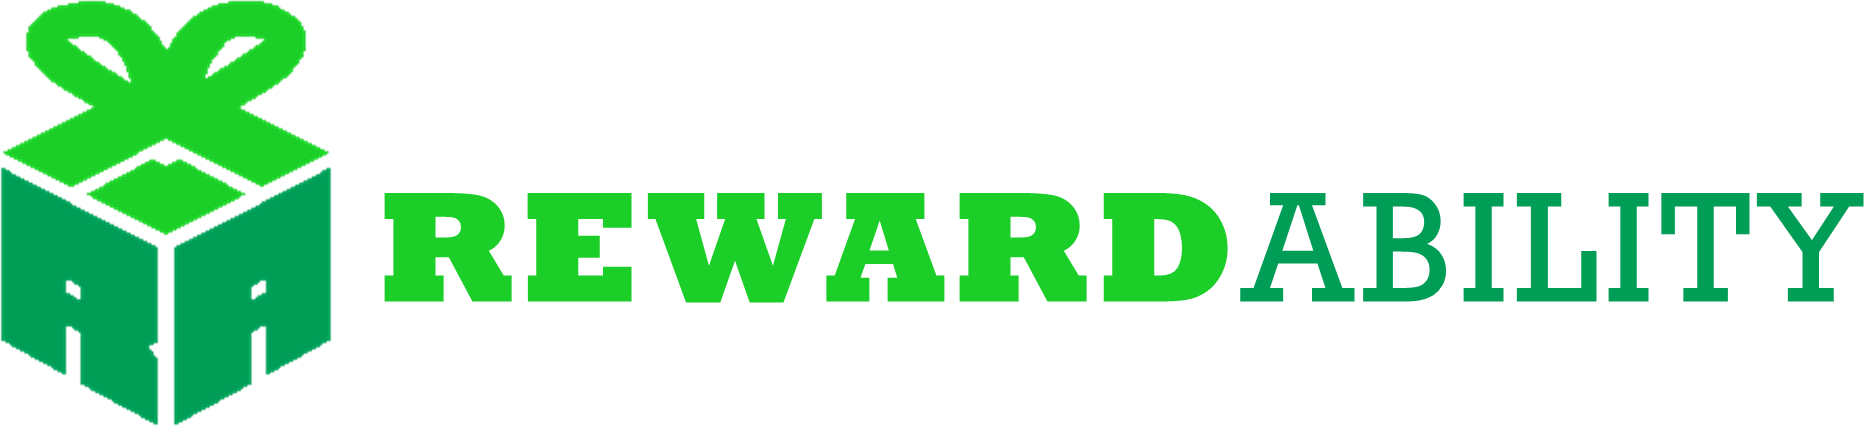 Yeaps RewardAbility Logo (Colored).png